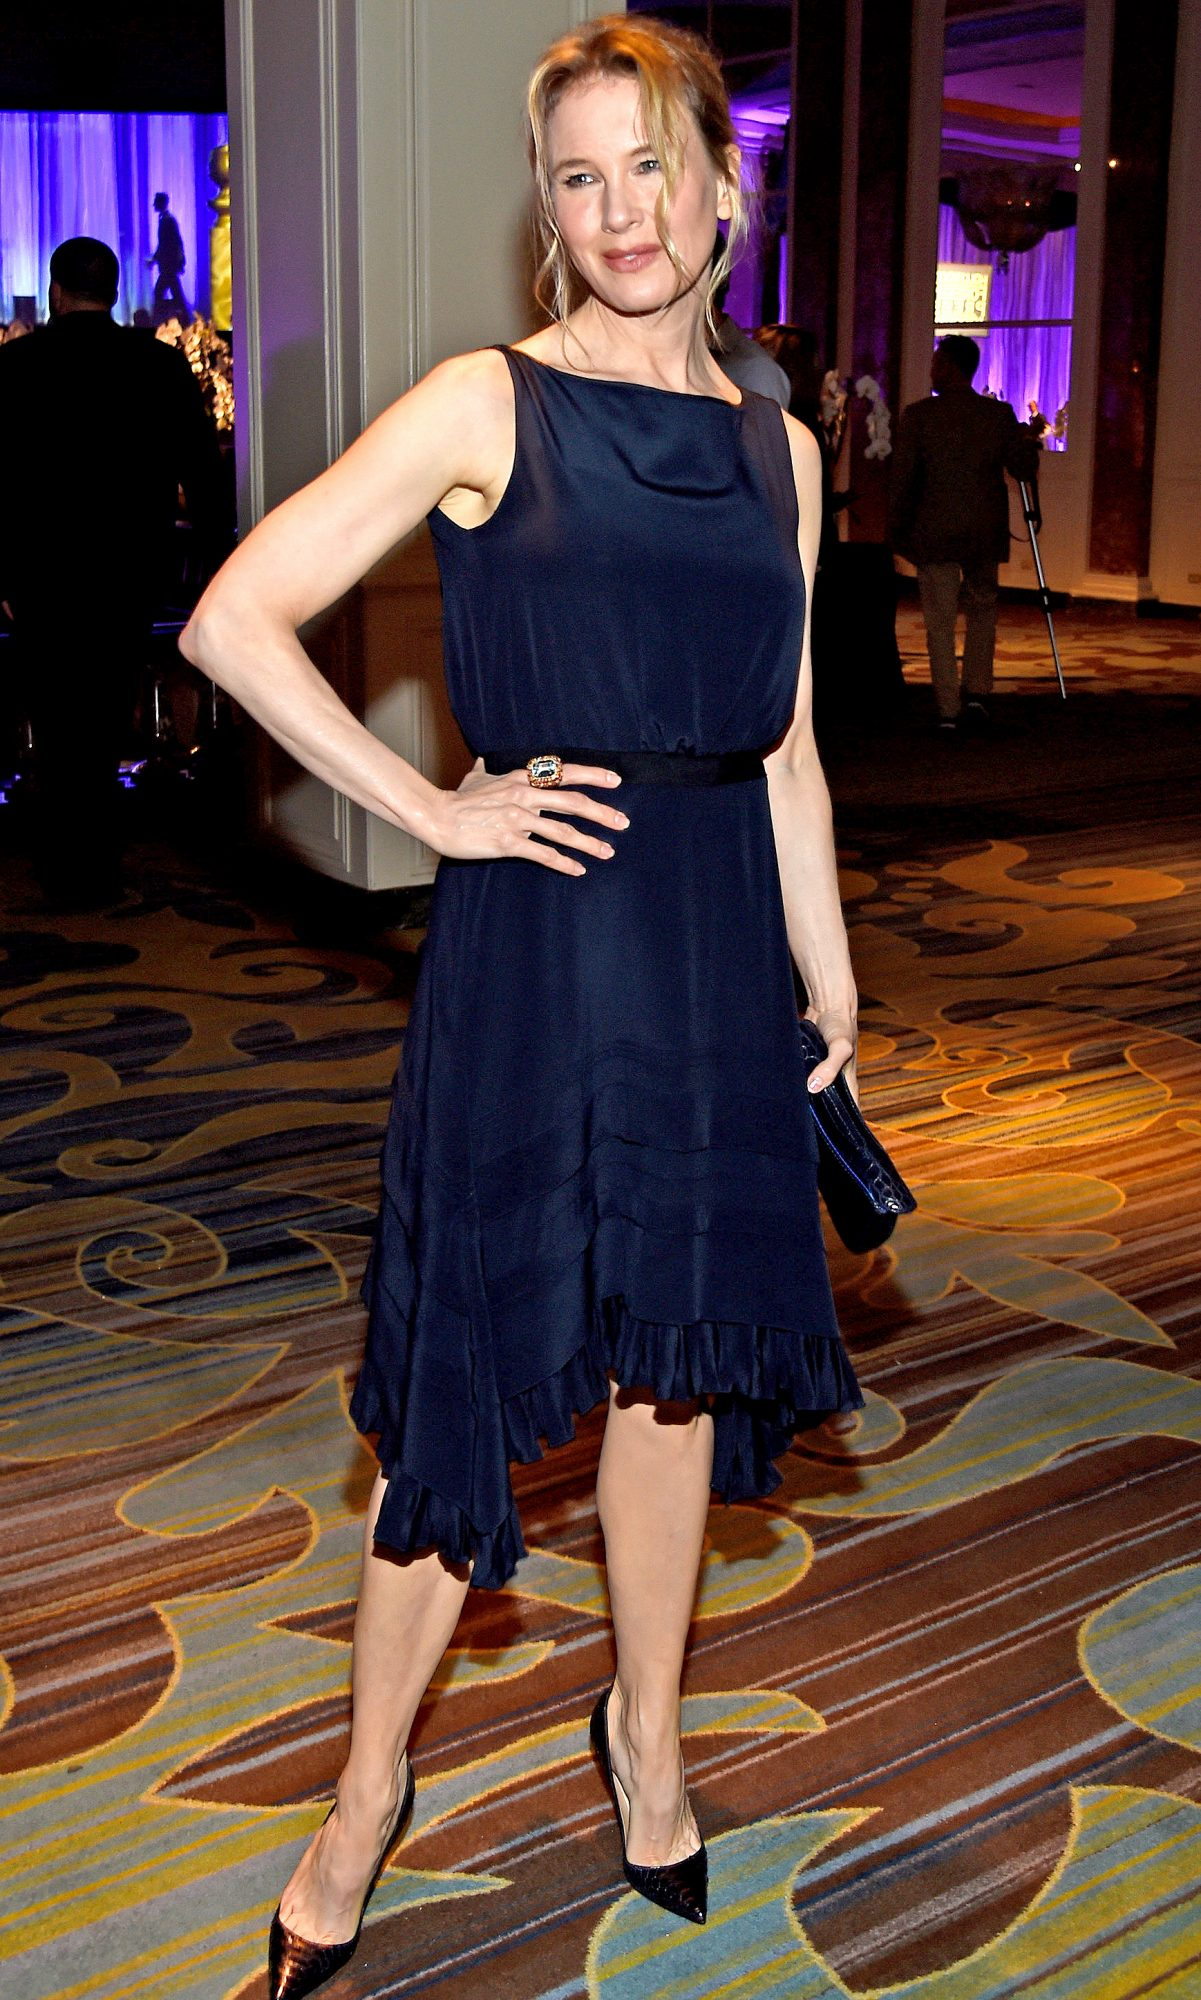 Hollywood Foreign Press Association's Grants Banquet, Cocktail Reception, Los Angeles, USA - 04 Aug 2016